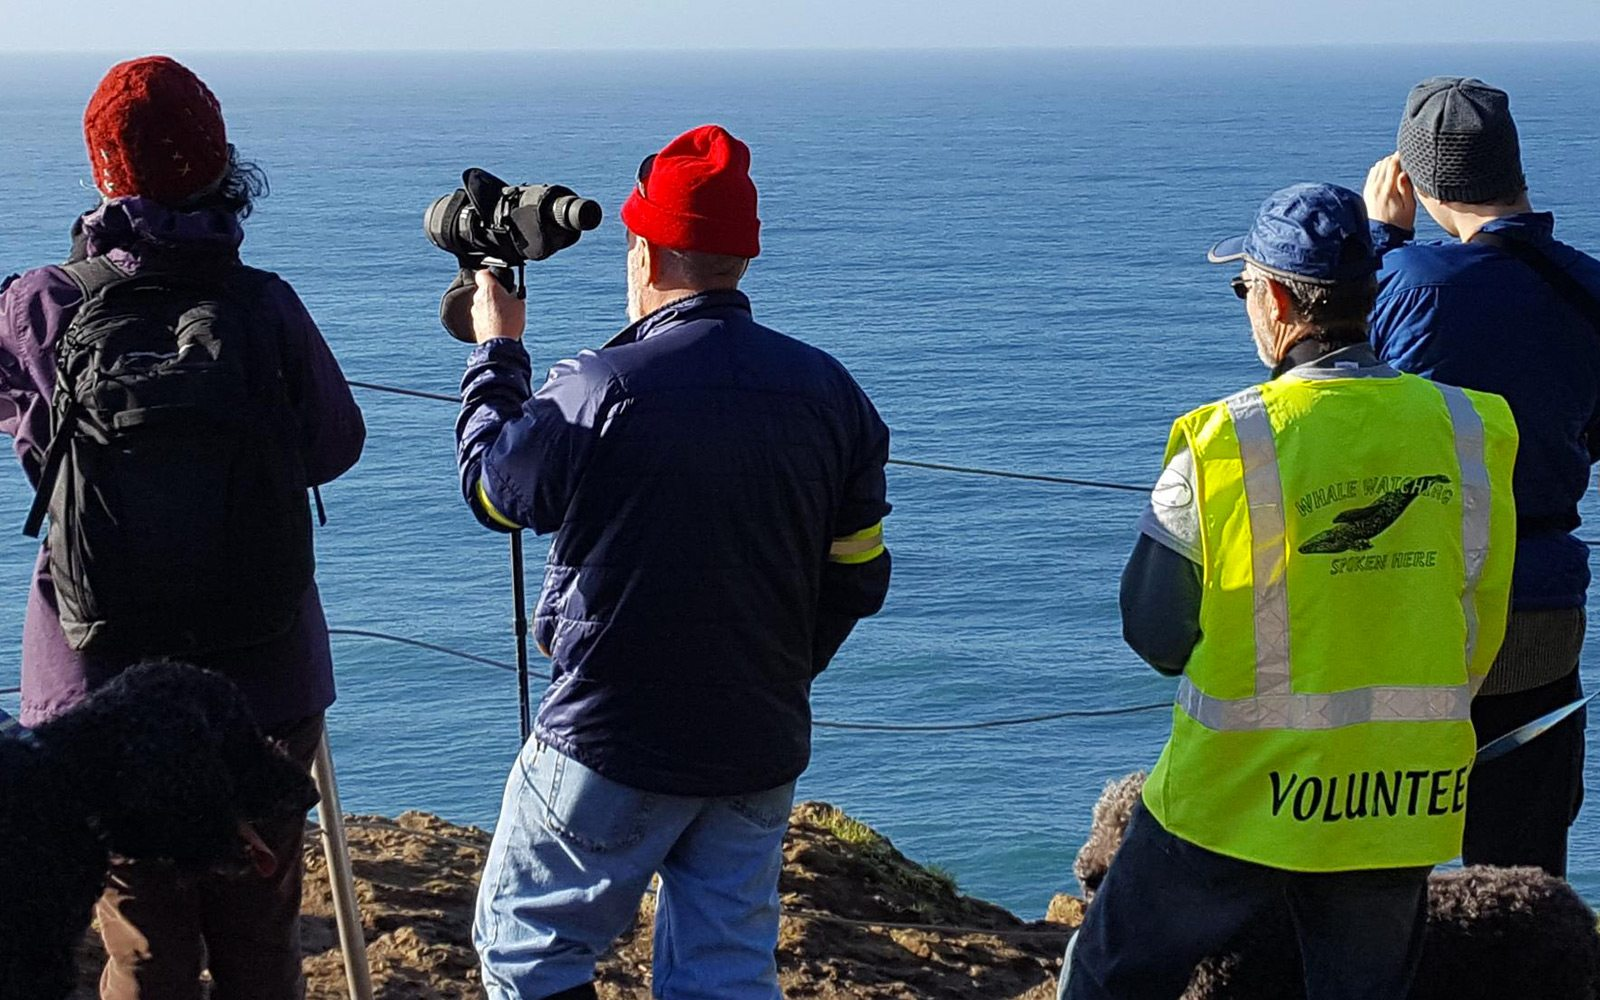 A volunteer assists those watching whales at an unknown location along the Oregon Coast.